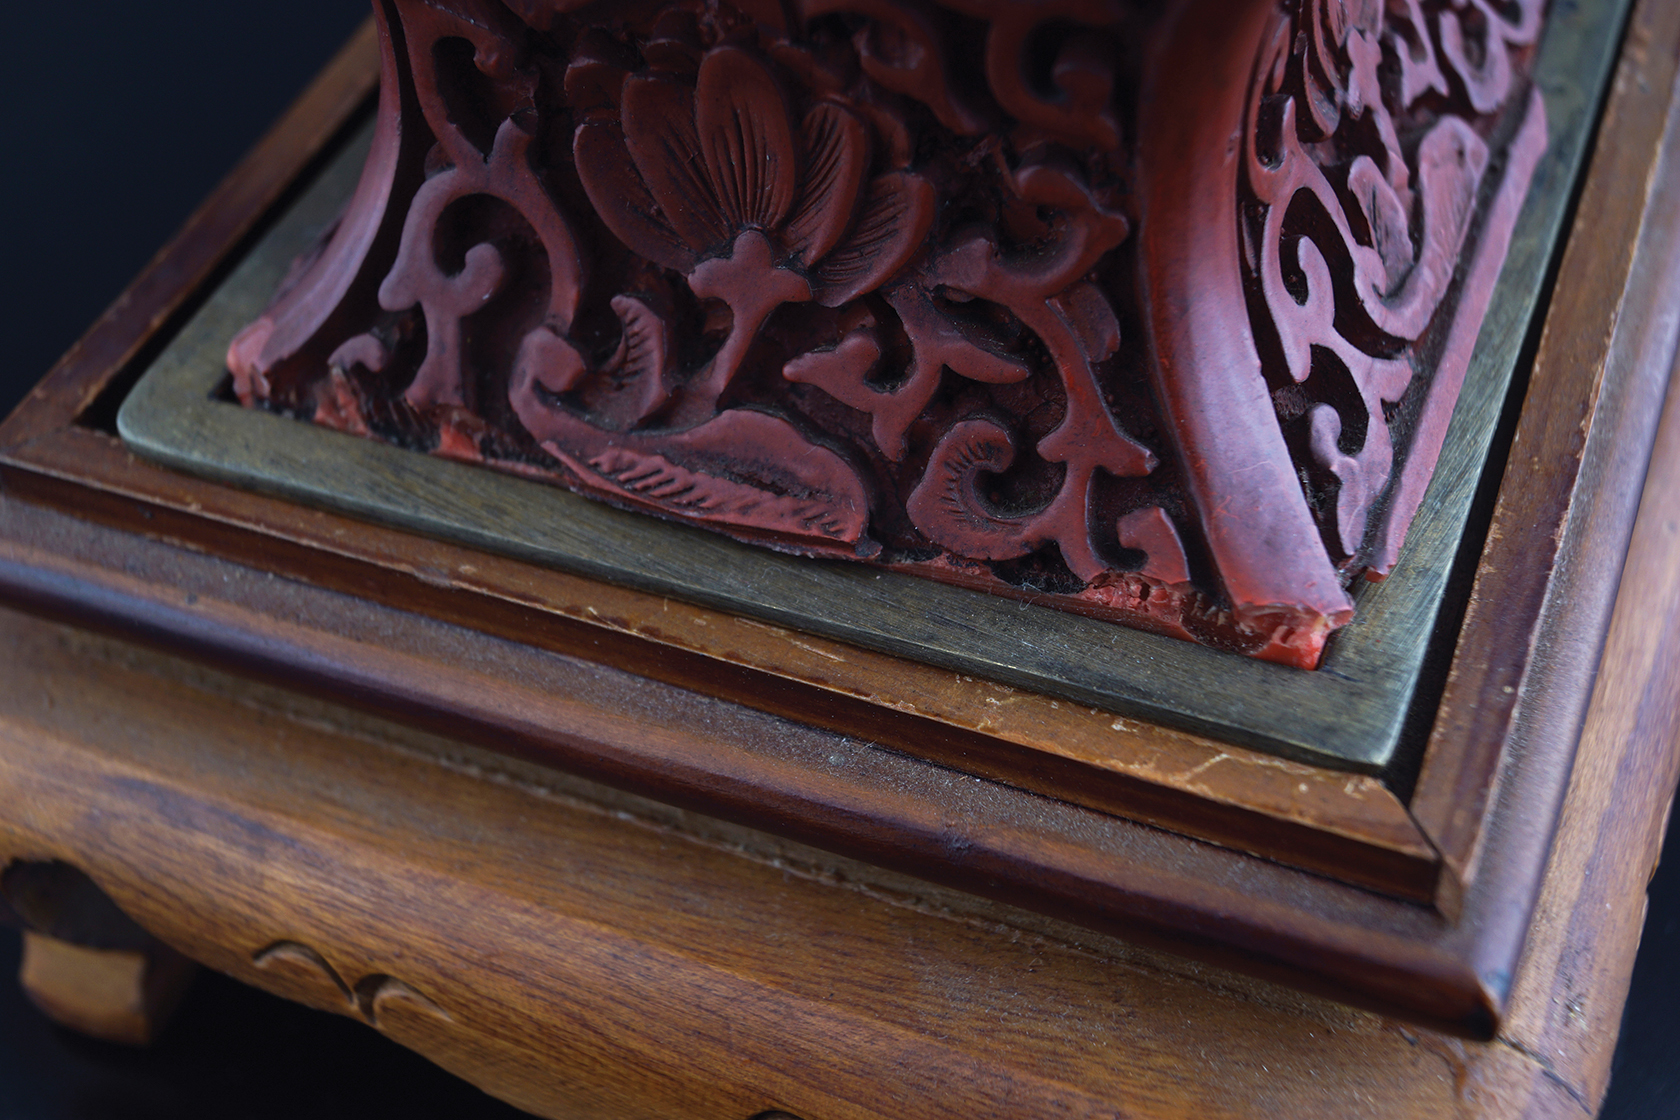 CHINESE QING PERIOD CINNEBAR LACQUERED VASE - Image 6 of 6